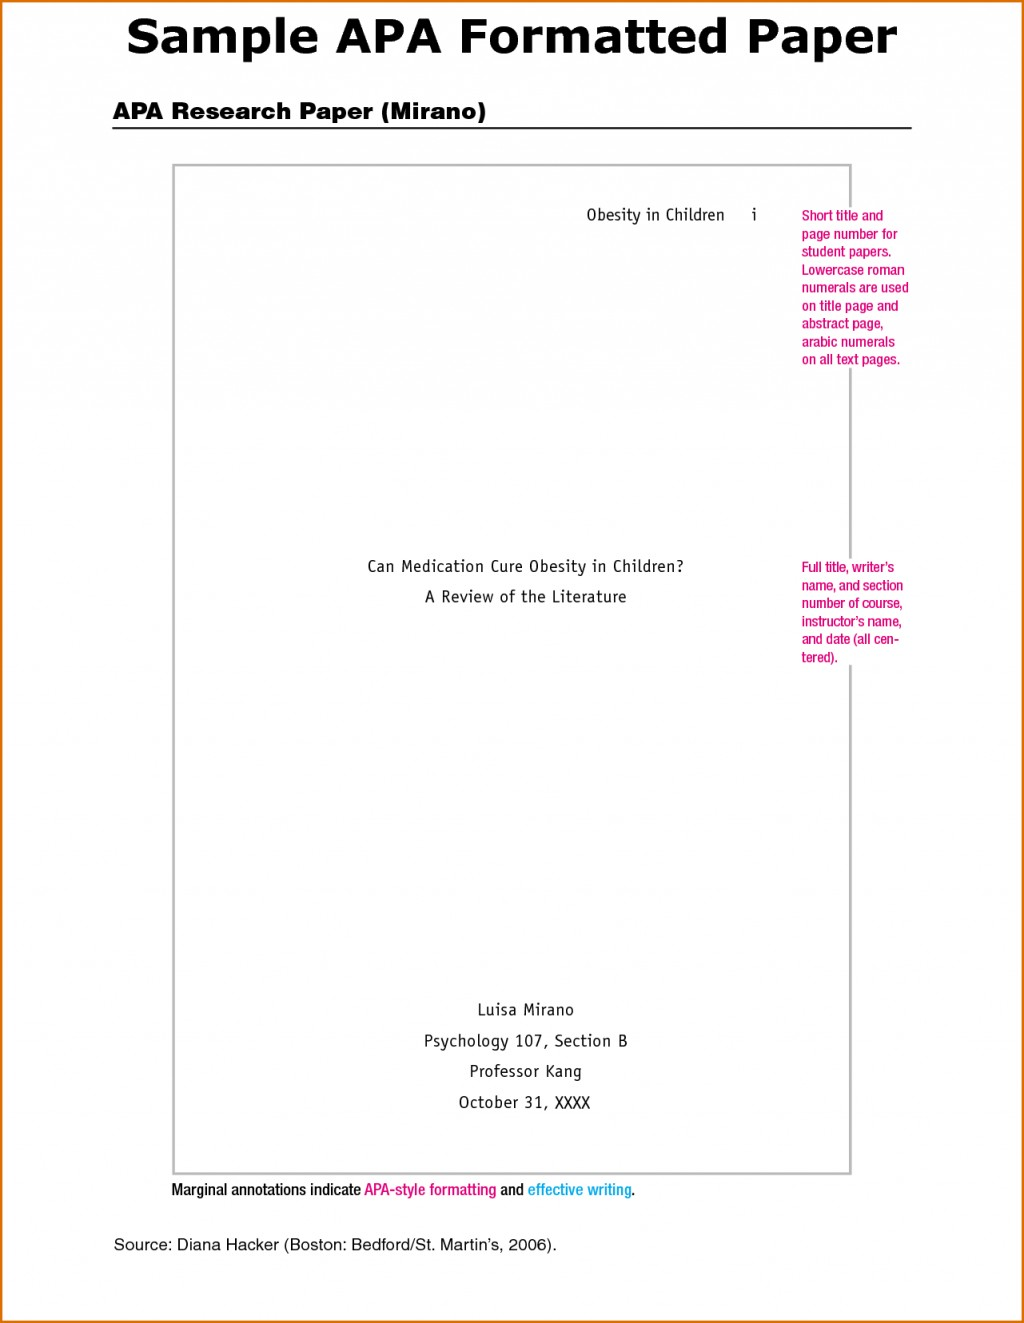 019 Apa Paper Template Iztn6rys Format Research Reference Unique Page References List Large